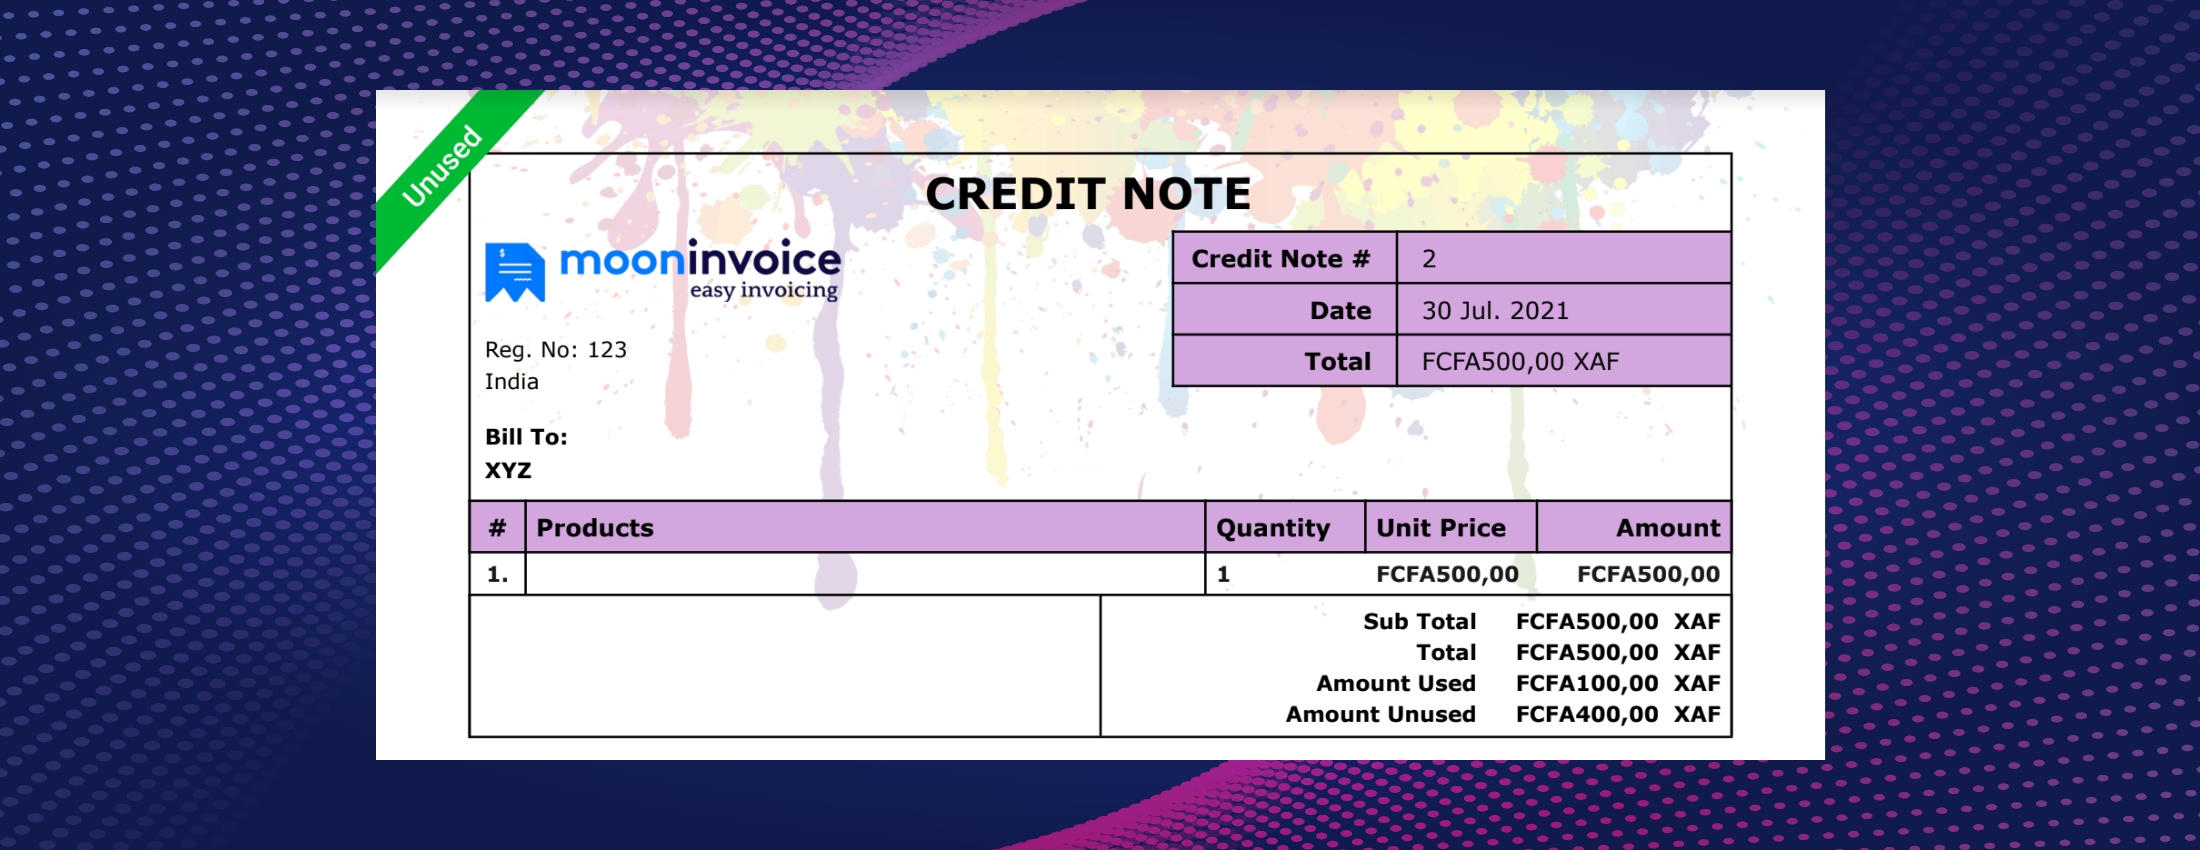 Credit Note Example